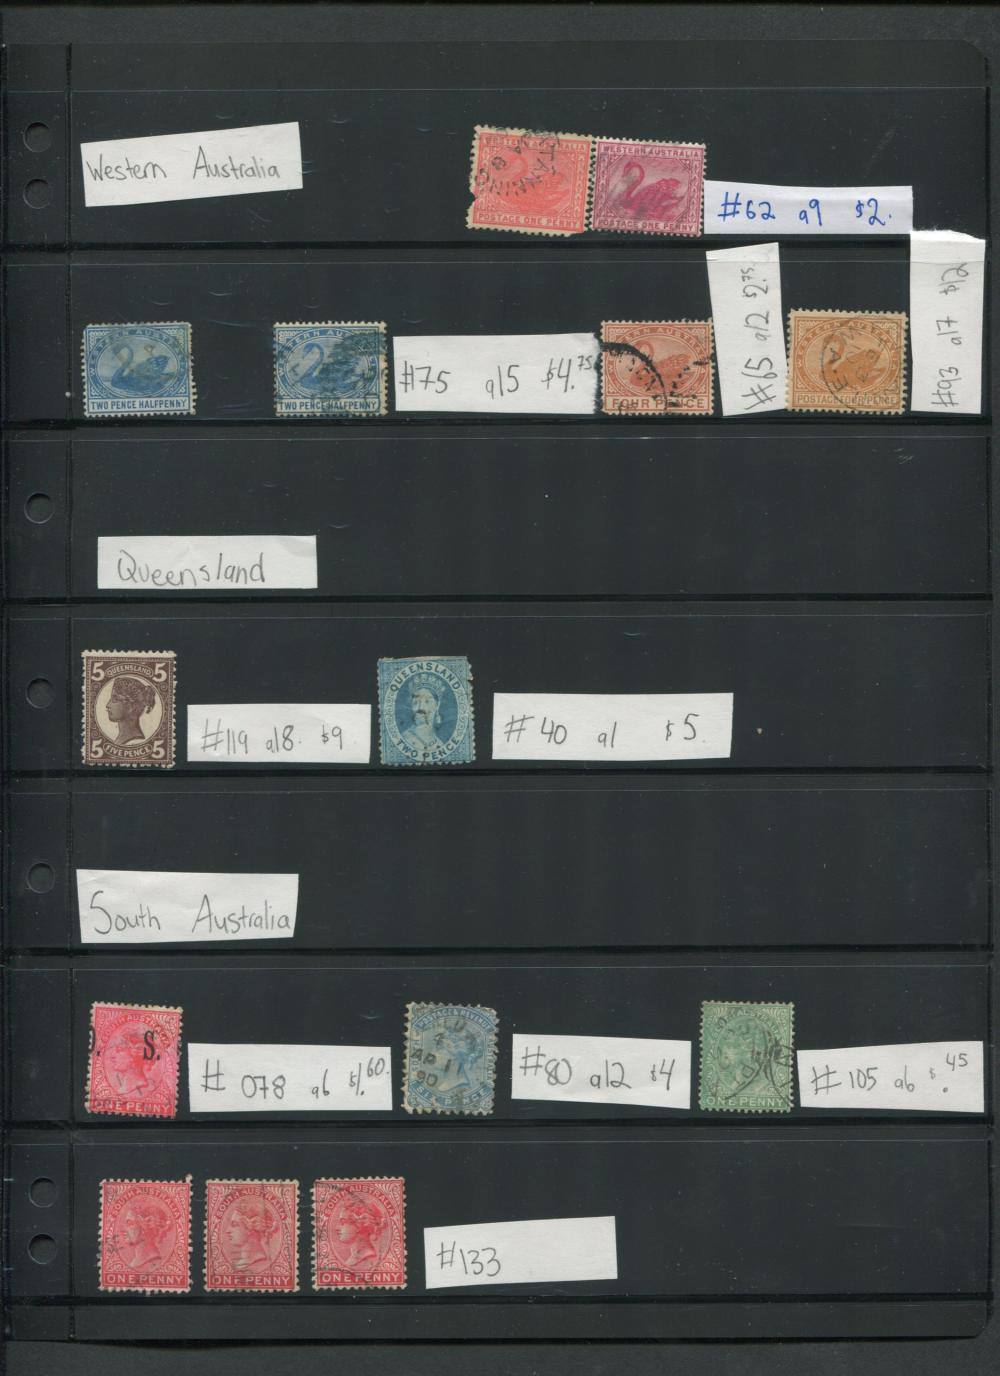 Australia States Stamp Collection 2